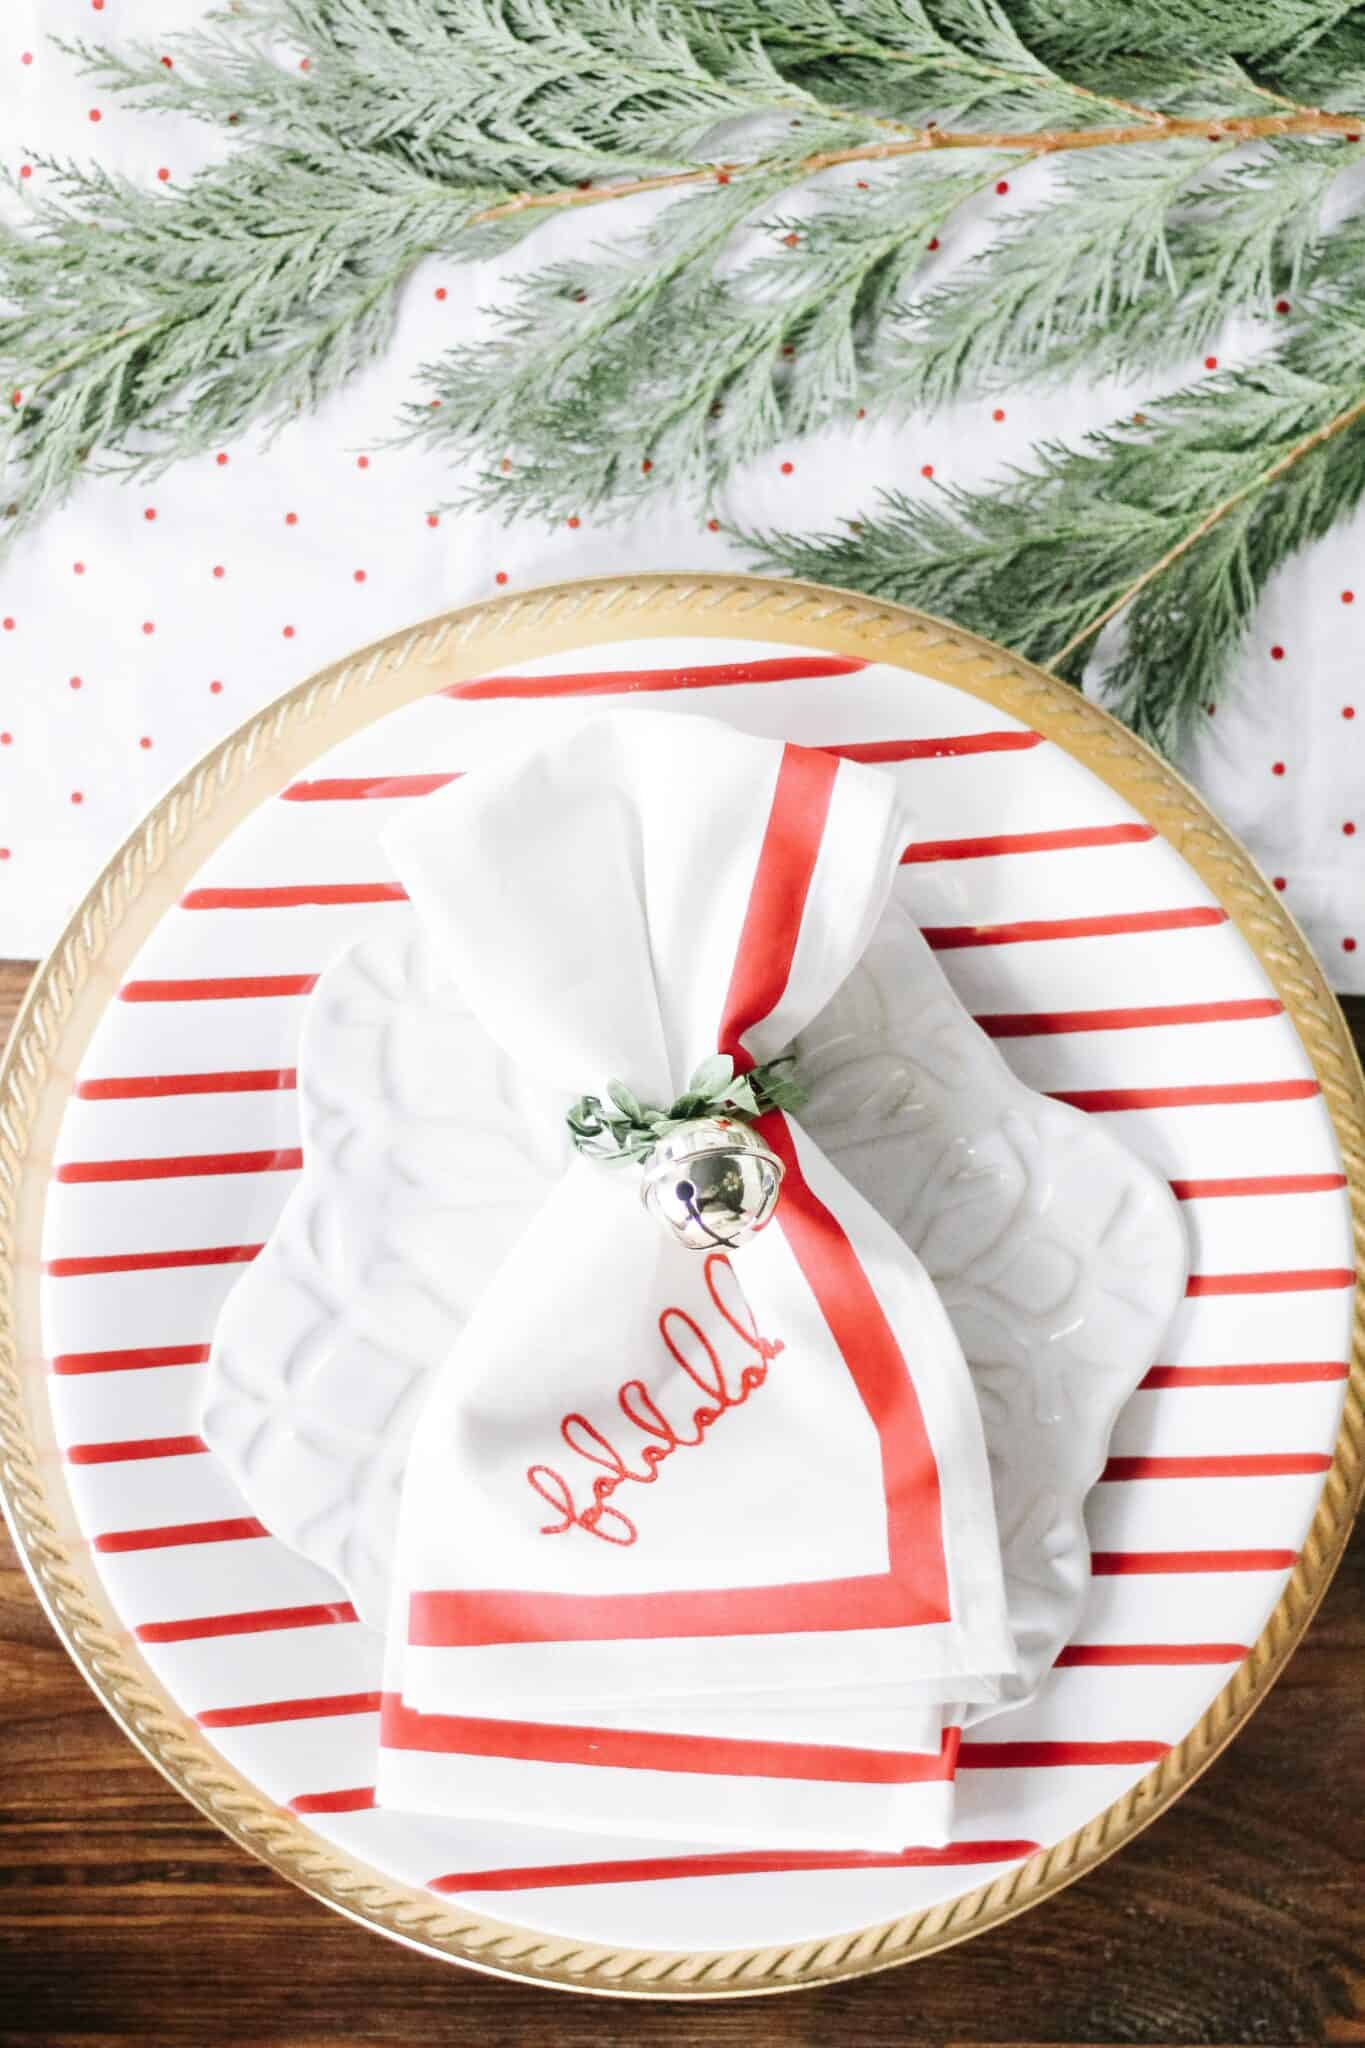 falala napkin on red striped candy cane plate